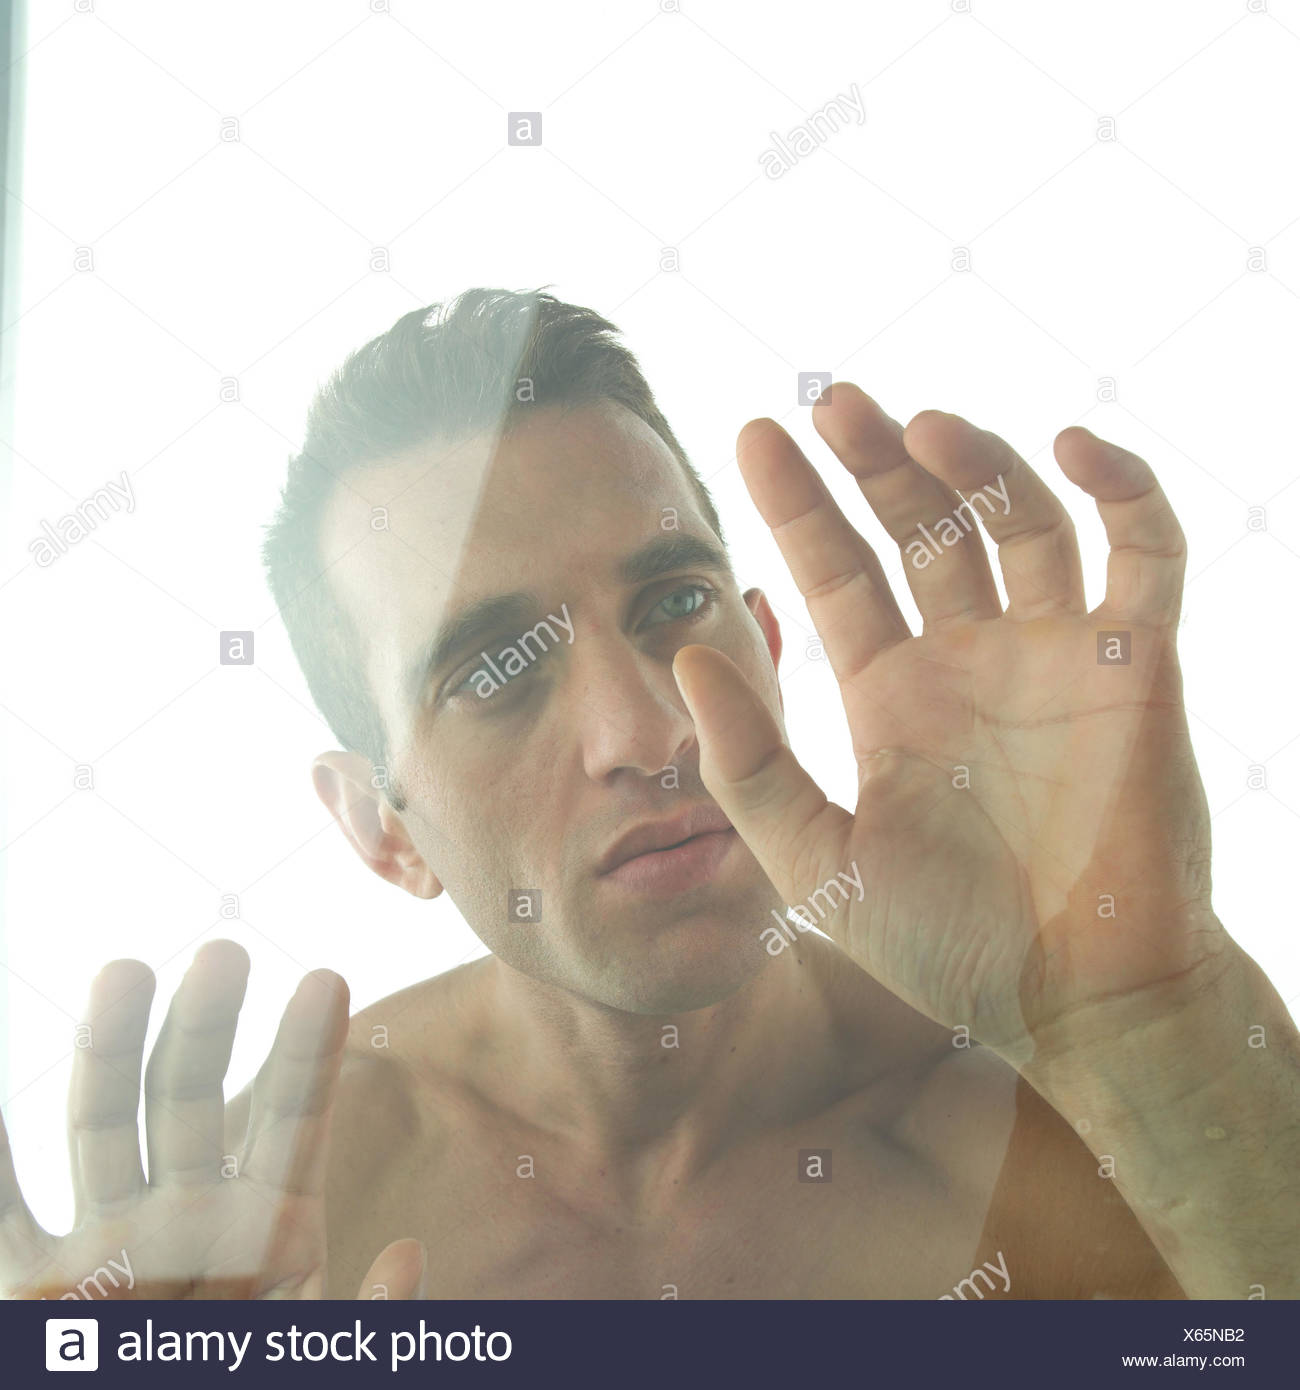 Man, free upper part of the body, gesture, slice, portrait, very close, expression, seriously, thoughtful, thoughtfulness, seriousness, uncertainly, insecurity, isolates, isolation, hand, palm, windowpane, feel, feel, touch, quarantine, confuses, confusion, disorientated, disorientation - Stock Image